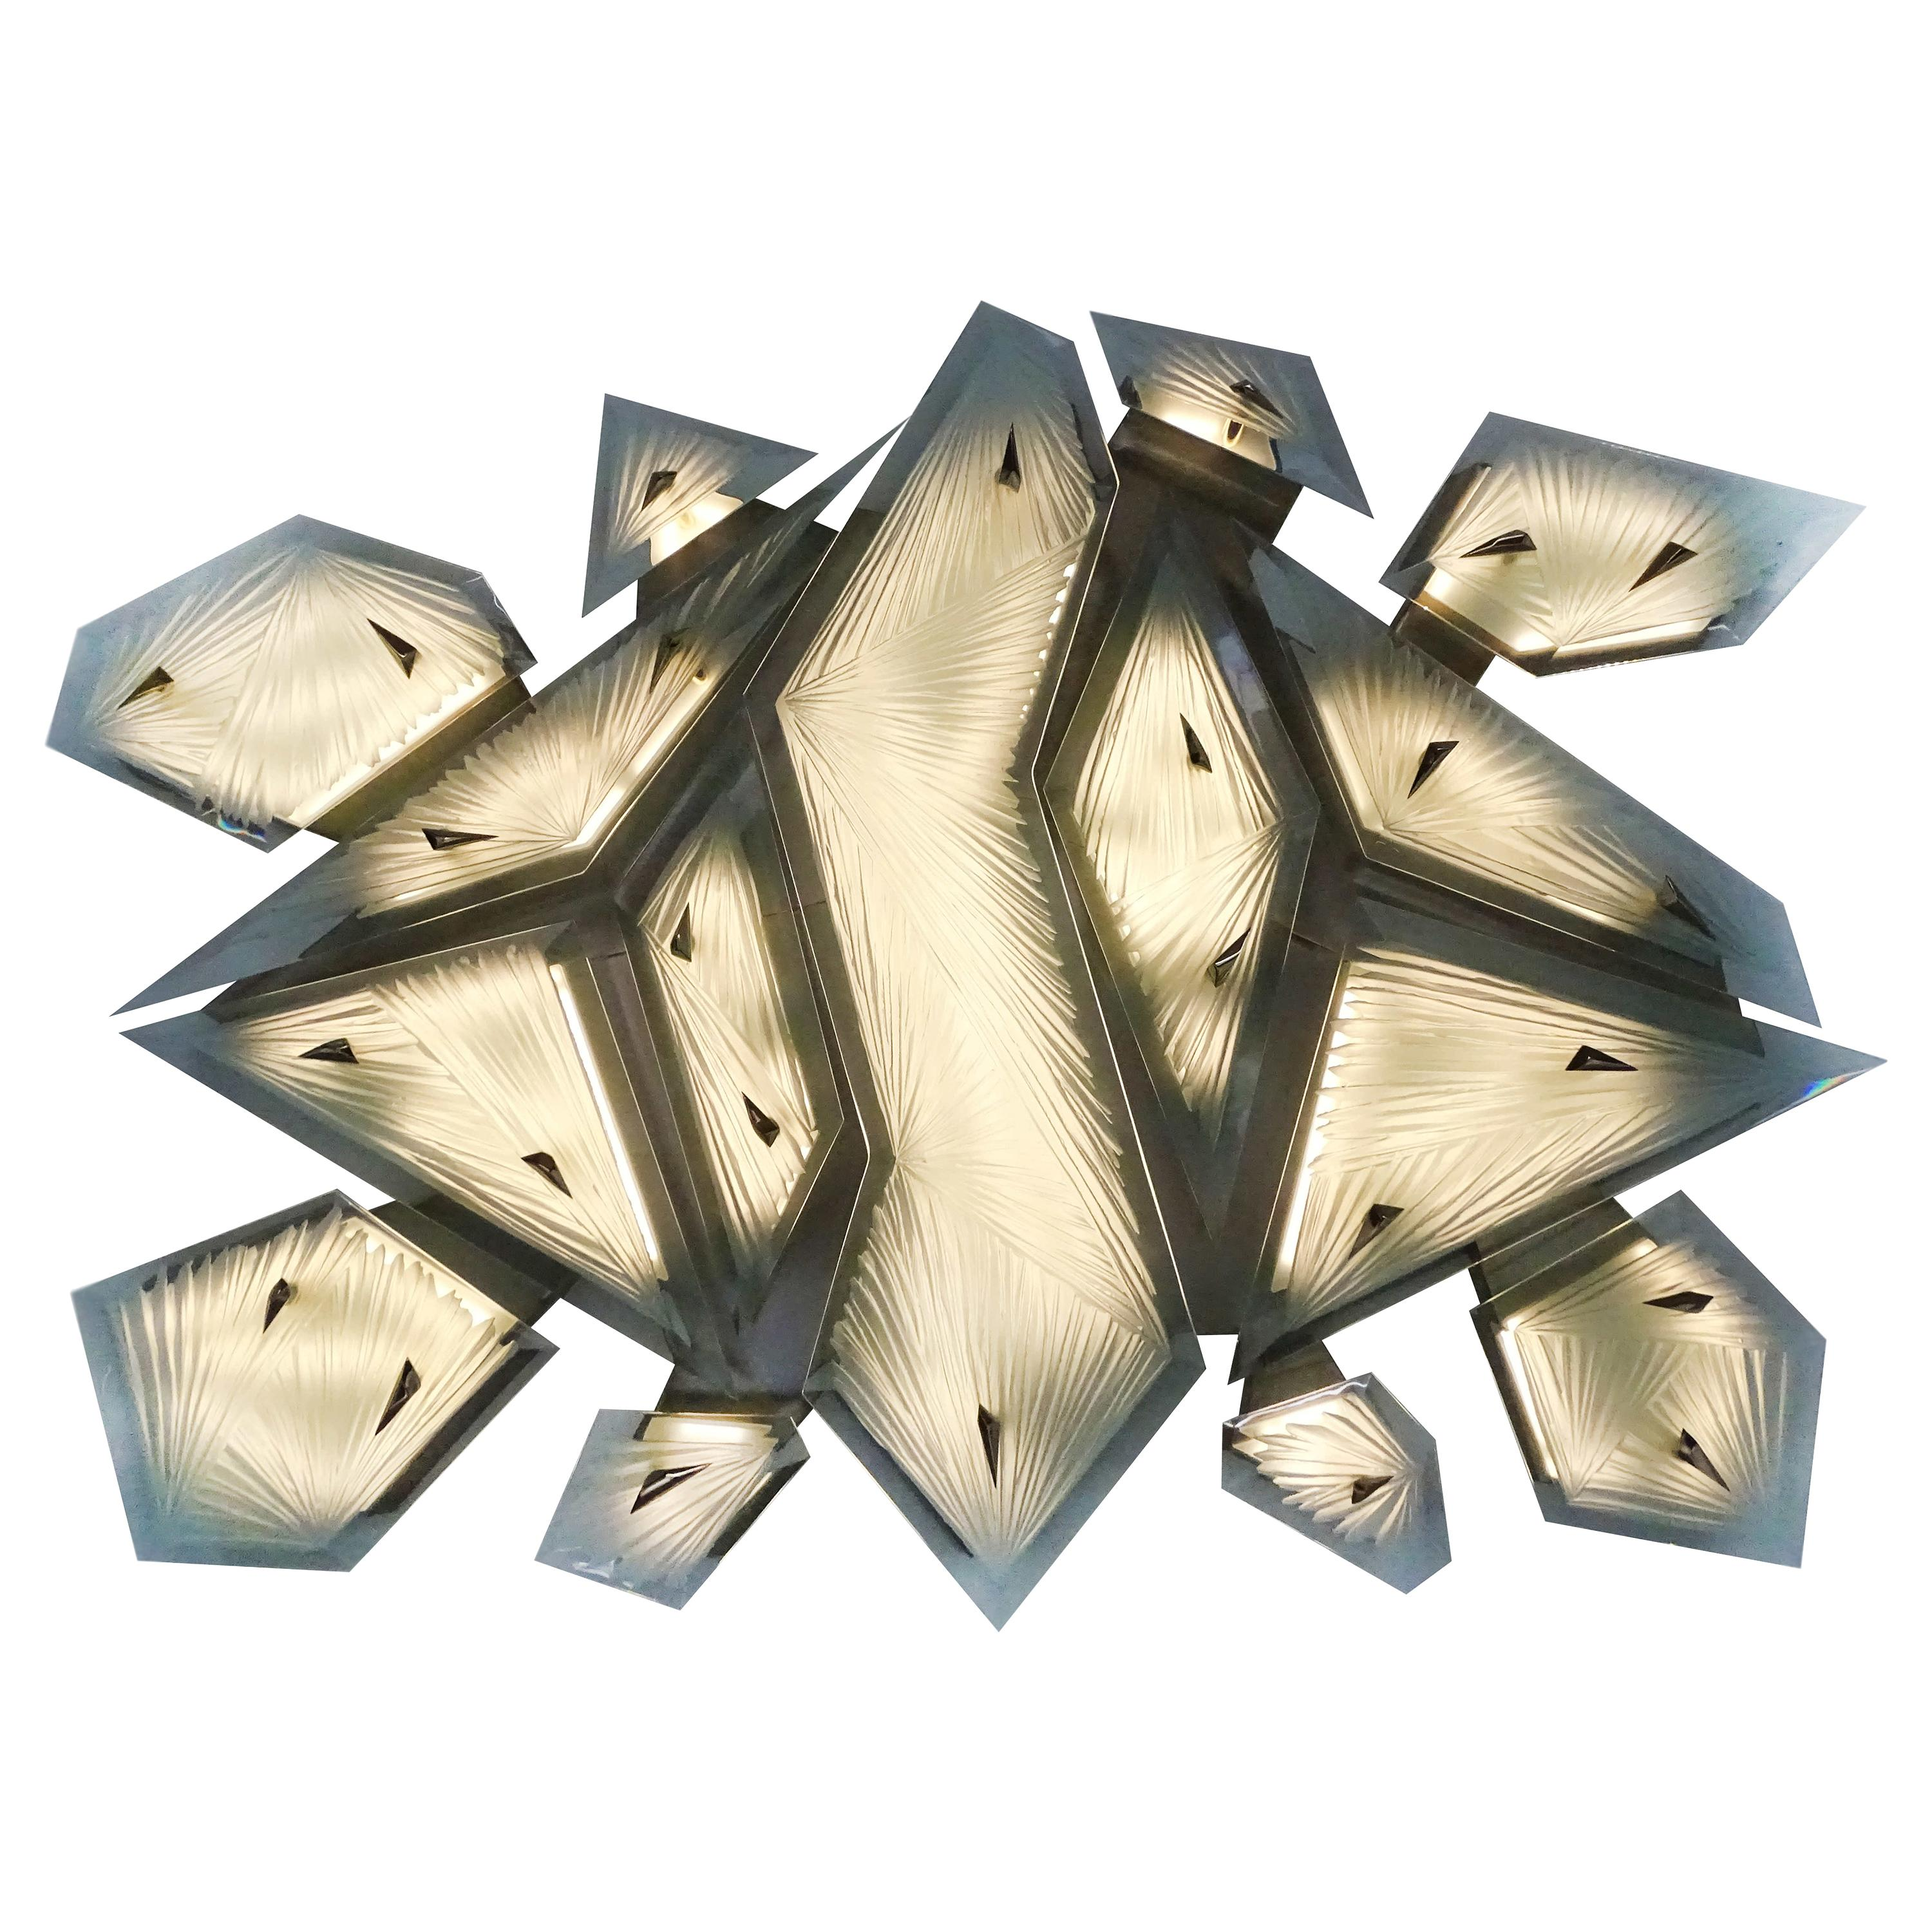 Tortuga Sculptural Wall Sconce by Ghirò Studio for Fabio Ltd